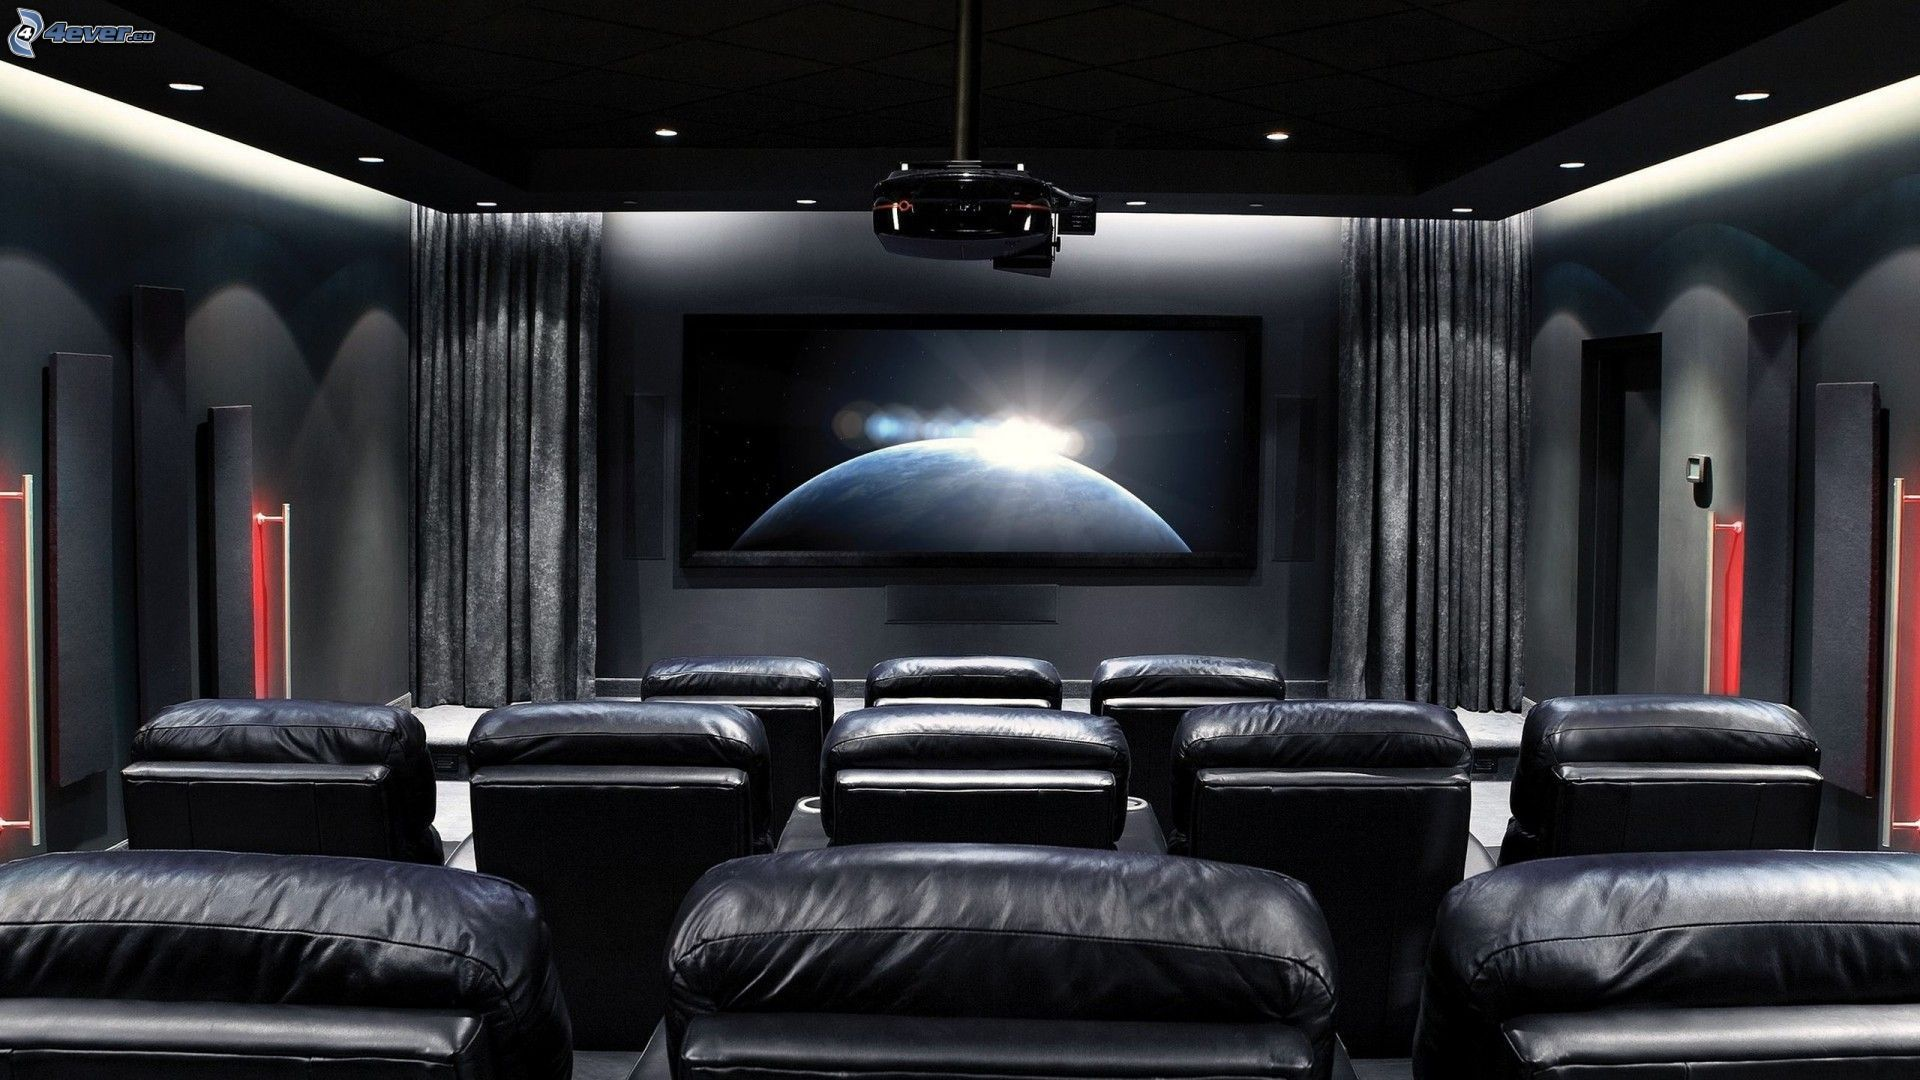 Cinema Wallpaper Picture